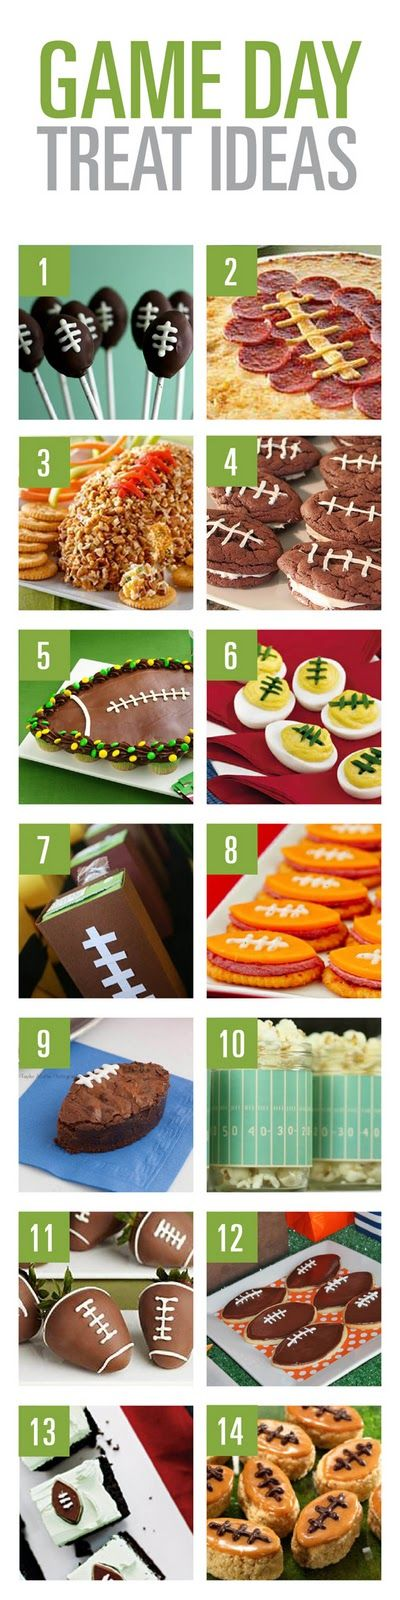 Football themed recipes for dessert and snacks for game day parties.